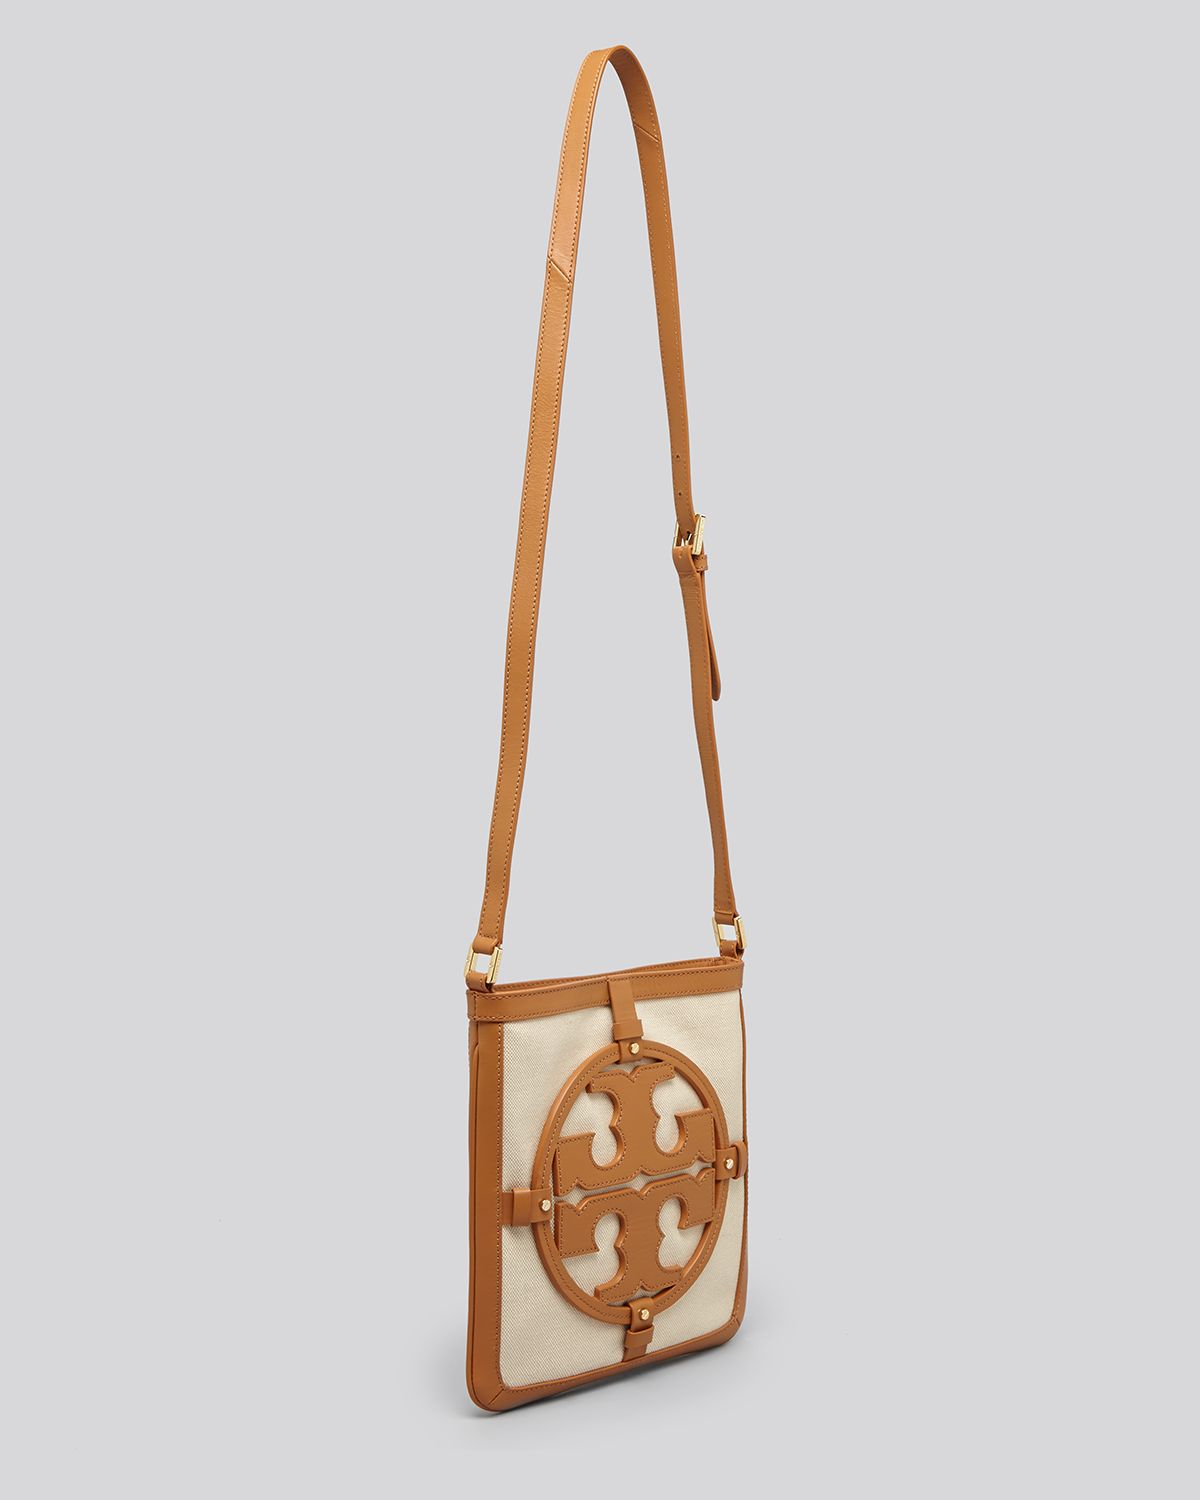 5a7129a3b7 Lyst - Tory Burch Crossbody Holly Book Bag Messenger in White